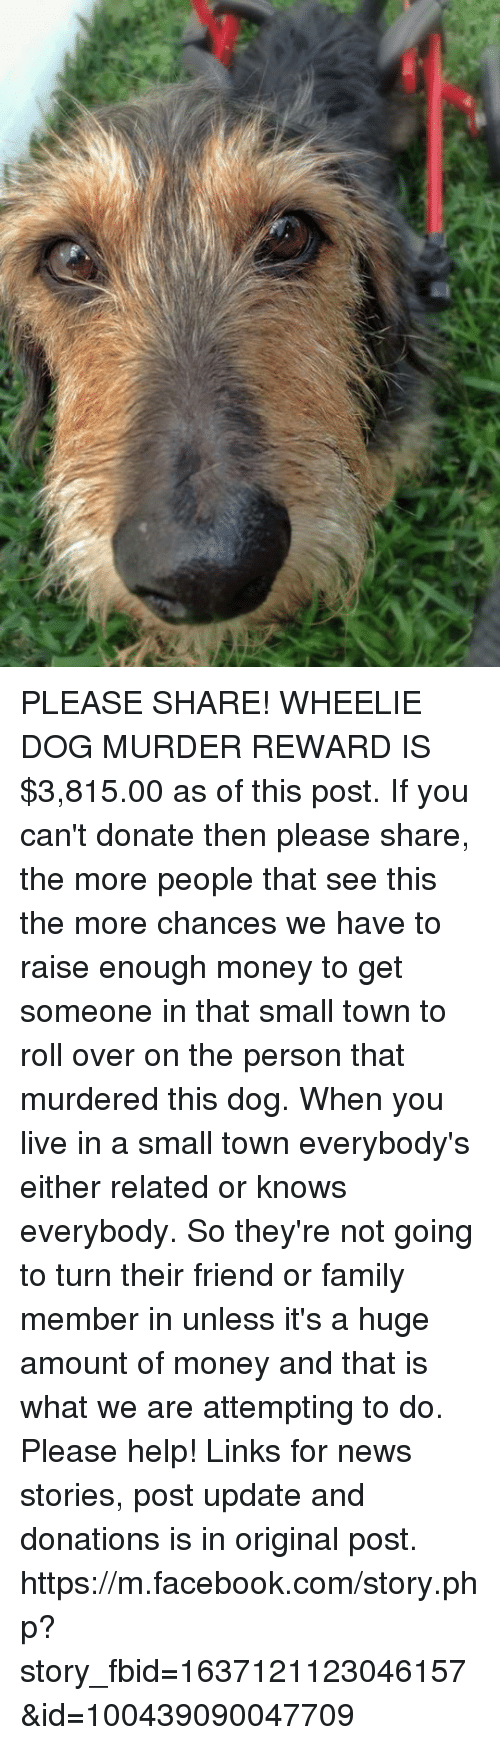 Home Market Barrel Room Trophy Room ◀ Share Related ▶ Facebook family memes Money News facebook.com Help Live m.facebook m.facebook.com Murder 🤖 next collect meme → Embed it next → PLEASE SHARE! WHEELIE DOG MURDER REWARD IS $381500 as of this post If you can't donate then please share the more people that see this the more chances we have to raise enough money to get someone in that small town to roll over on the person that murdered this dog When you live in a small town everybody's either related or knows everybody So they're not going to turn their friend or family member in unless it's a huge amount of money and that is what we are attempting to do Please help! Links for news stories post update and donations is in original post httpsmfacebookcomstoryphp?story_fbid=1637121123046157&id=100439090047709 Meme Facebook family memes Money News facebook.com Help Live m.facebook m.facebook.com Murder 🤖 php Dog links com friend donate huge you story person town post what for share more this get please when you people turn enough then someone wheelie their roll roll over see small please help over And Cant When Its A This Post Small Town That Not Raise Original The Update Member Theyre Its Amount Original Post In A Are Have Stories Going If You And That Unless Either Not Going Not Going To Fbid Https Chances Knows Everybody Reward Family Member Murdered Facebook Facebook family family memes memes Money Money News News facebook.com facebook.com Help Help Live Live m.facebook m.facebook m.facebook.com m.facebook.com Murder Murder 🤖 🤖 php php Dog Dog links links com com friend friend donate donate huge huge you you story story person person town town post post what what for for share share more more this this get get please please when you when you people people turn turn enough enough then then someone someone wheelie wheelie their their roll roll roll over roll over see see small small please help please help over over And And Cant Cant When When Its A Its A This Post This Post Small Town Small Town That That Not Not Raise Raise Original Original The The Update Update Member Member Theyre Theyre Its Its Amount Amount Original Post Original Post In A In A Are Are Have Have Stories Stories Going Going If You If You And That And That Unless Unless Either Either Not Going Not Going Not Going To Not Going To Fbid Fbid Https Https Chances Chances Knows Knows Everybody Everybody Reward Reward Family Member Family Member Murdered Murdered found @ 23 likes ON 2018-04-23 00:02:43 BY me.me source: facebook view more on me.me